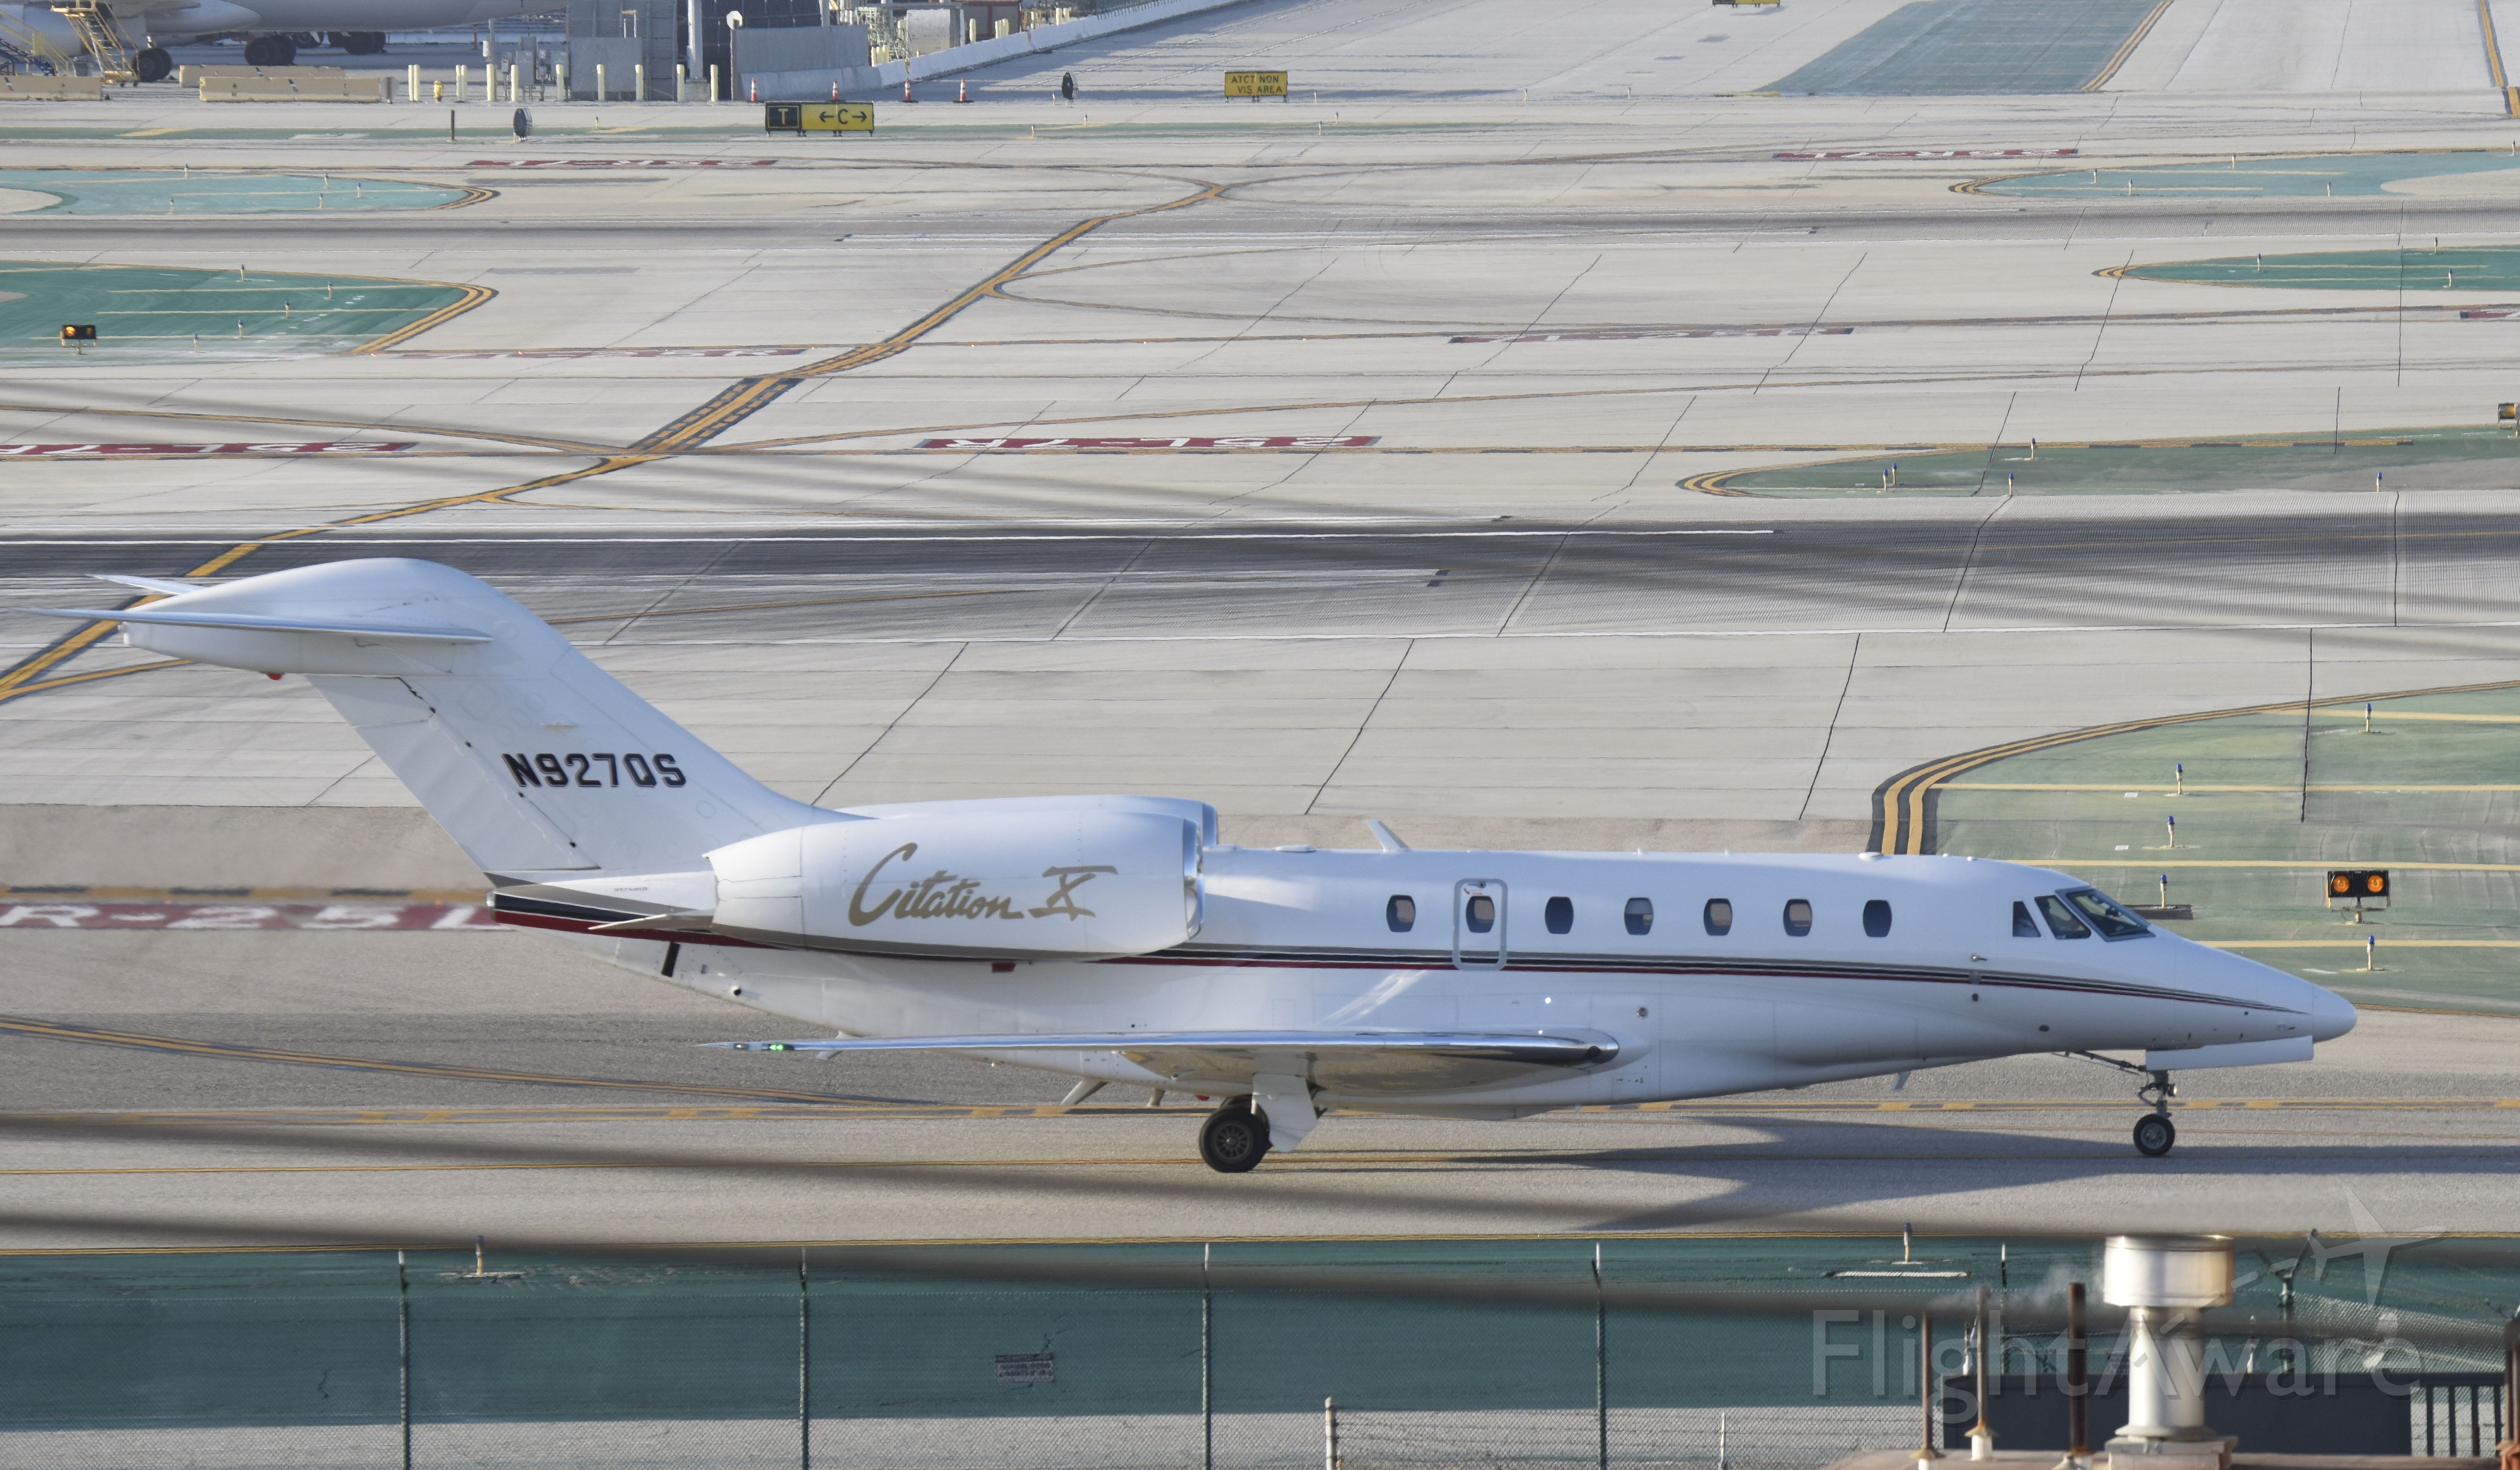 Cessna Citation X (N927QS) - Taxiing to parking at LAX